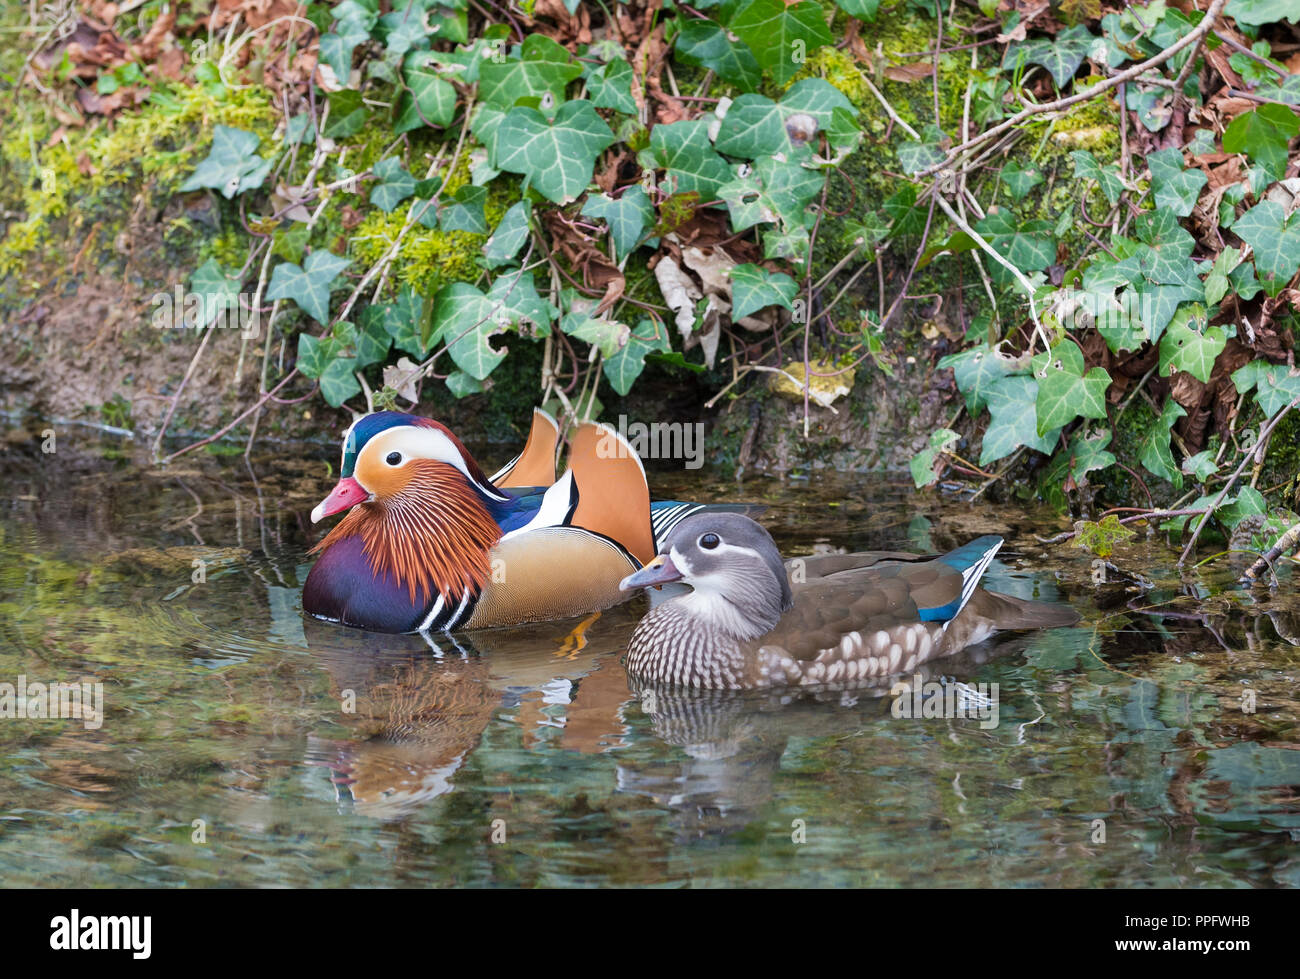 Pair of Mandarin ducks (Aix galericulata) floating on water in Spring in Arundel, West Sussex, England, UK. - Stock Image